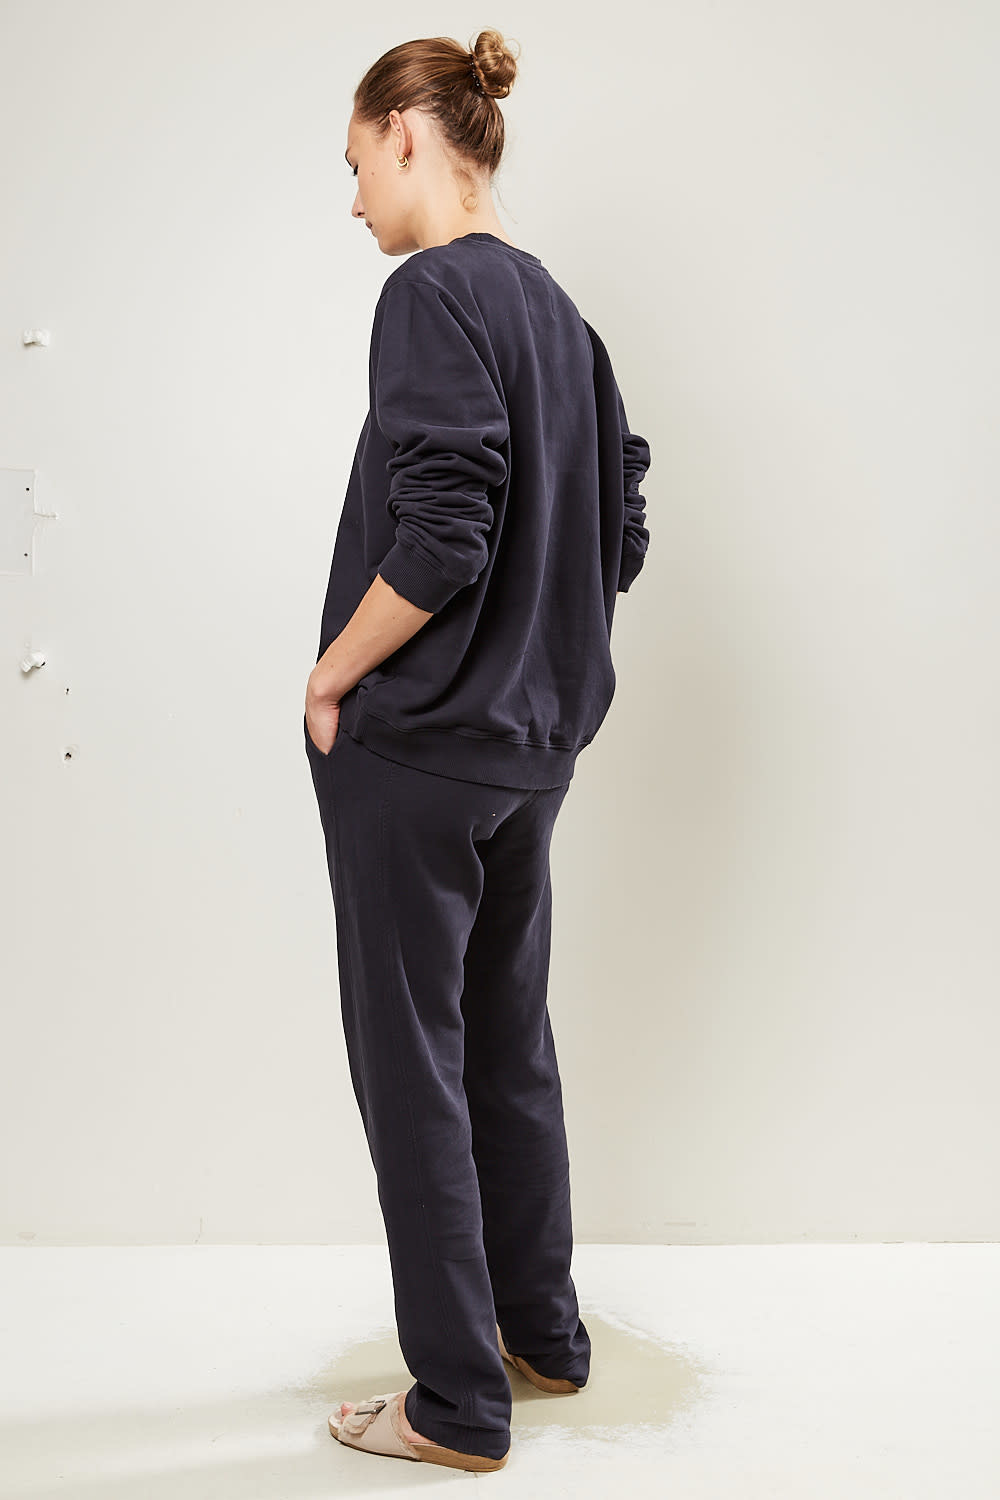 Humanoid - Tryvial tanner trousers